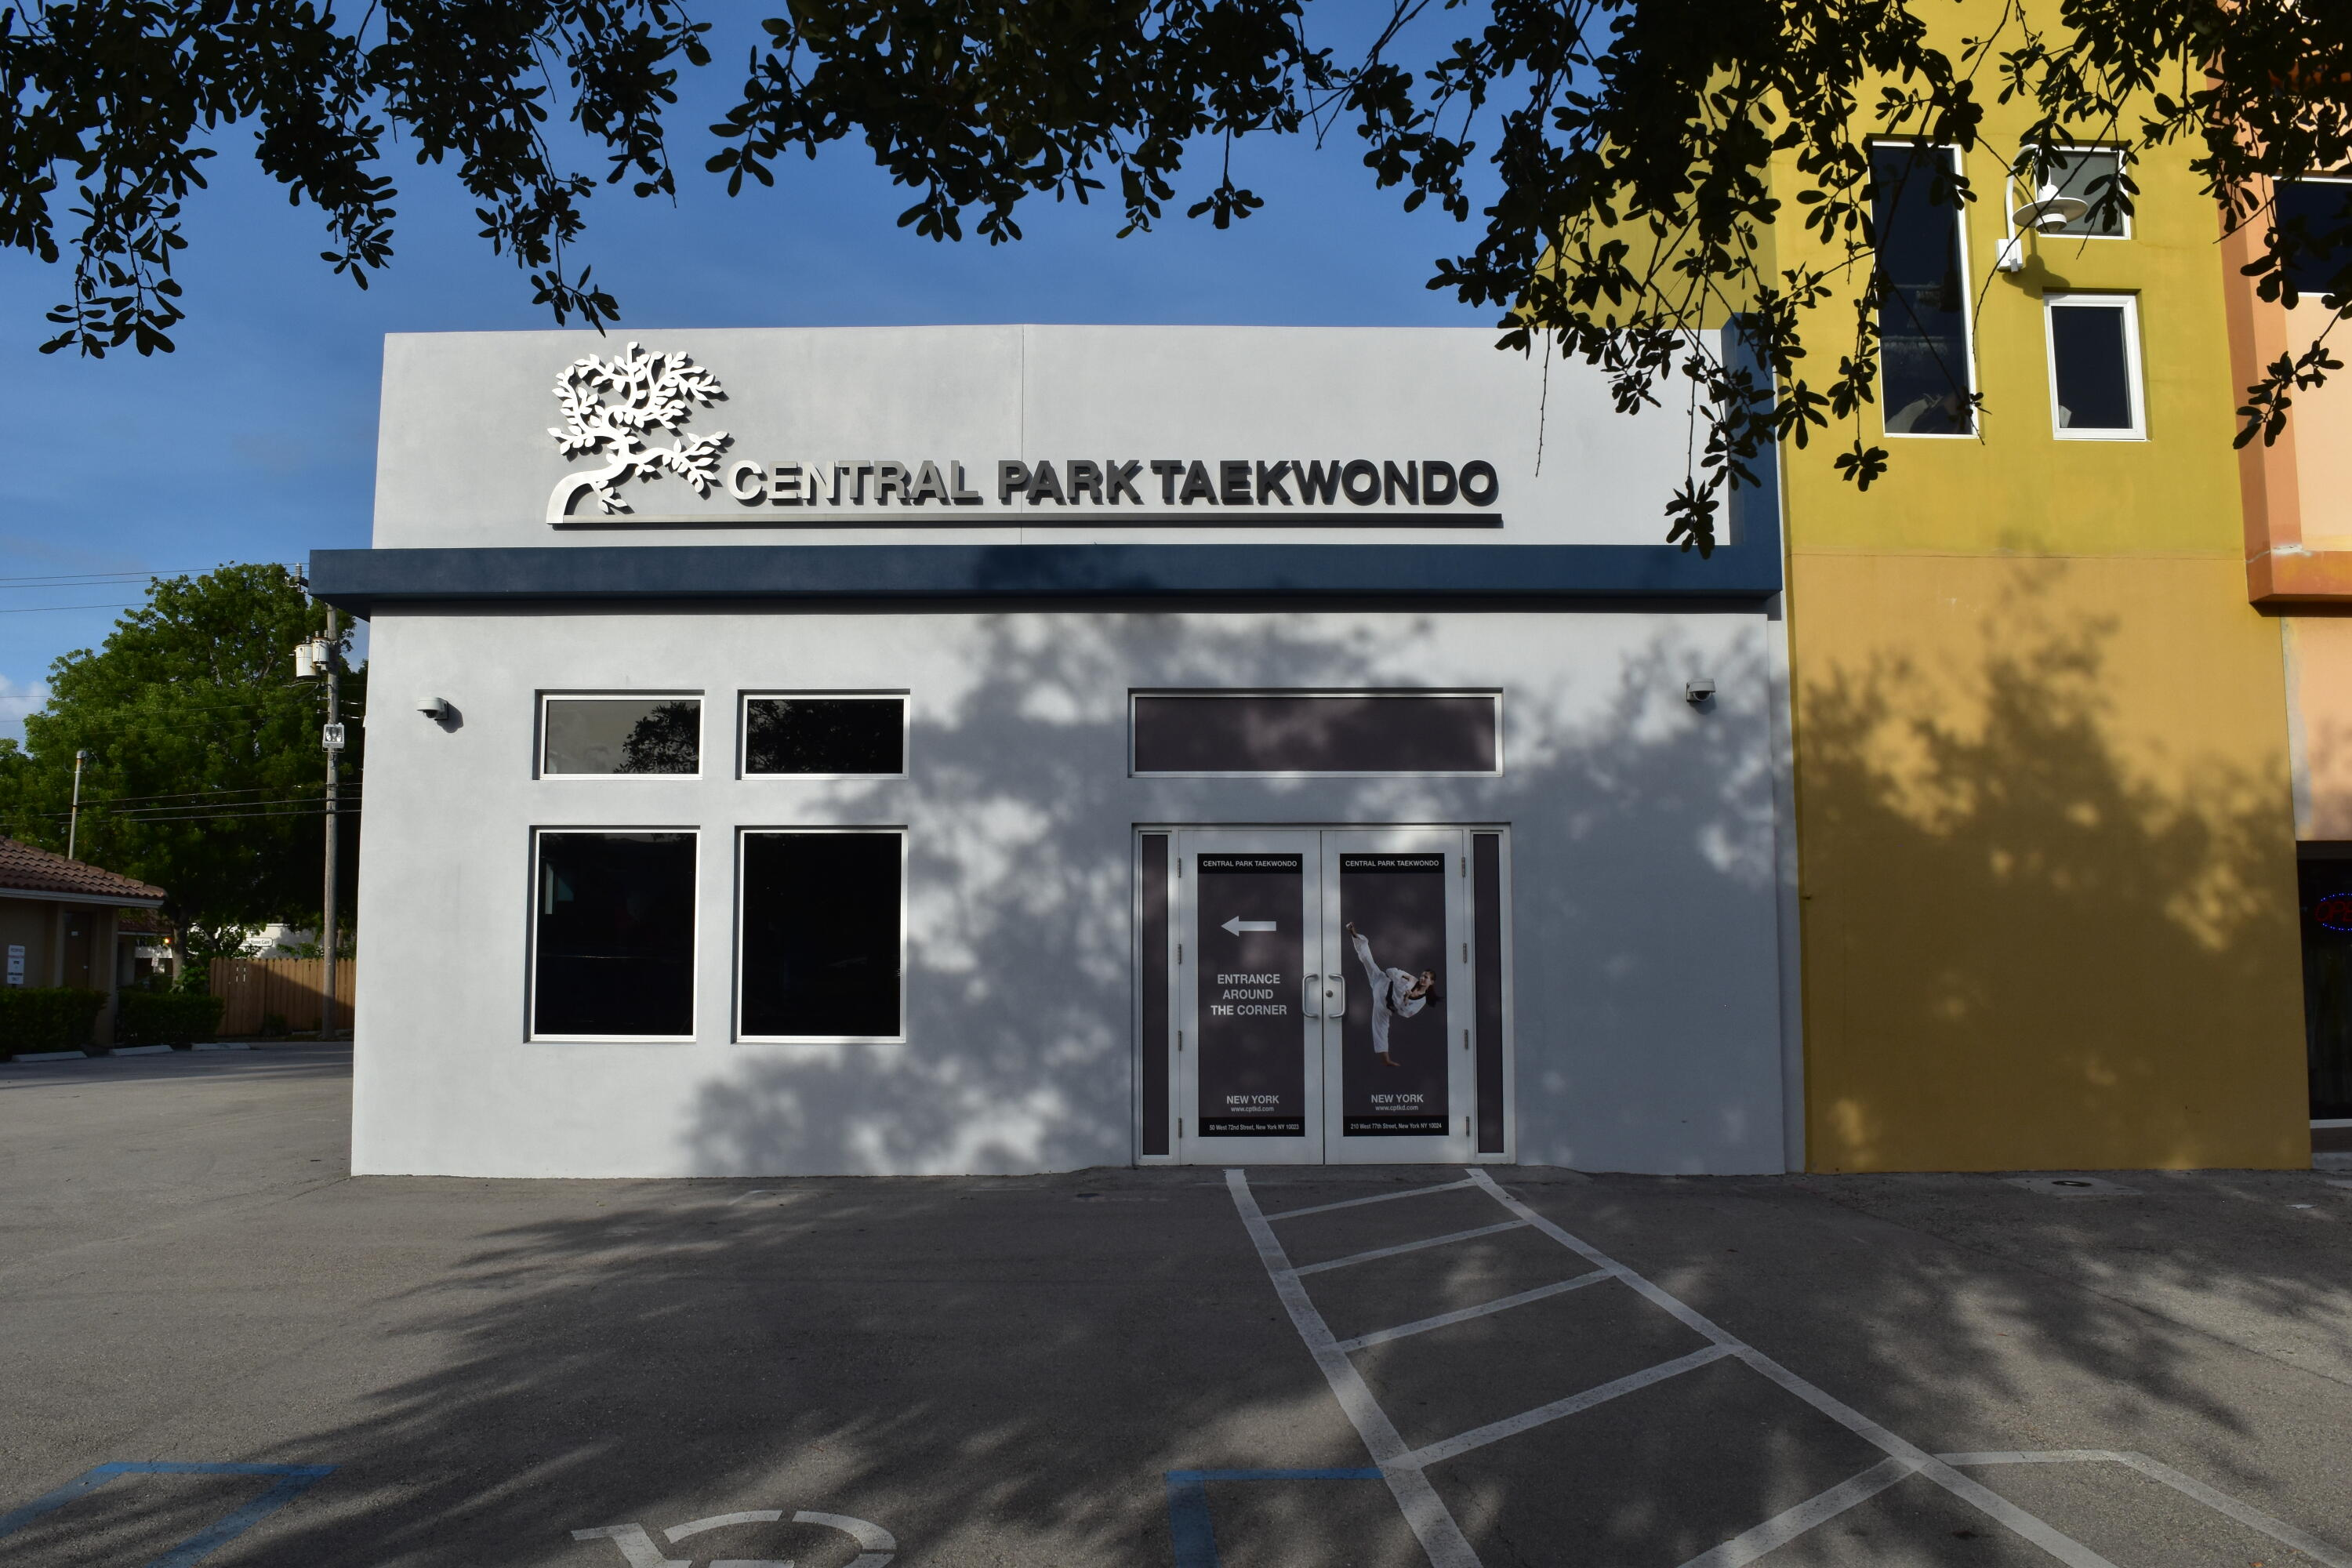 215 5th Avenue, Delray Beach, Florida 33483, ,1 BathroomBathrooms,Commercial Industrial,For Sale,5th,RX-10722575